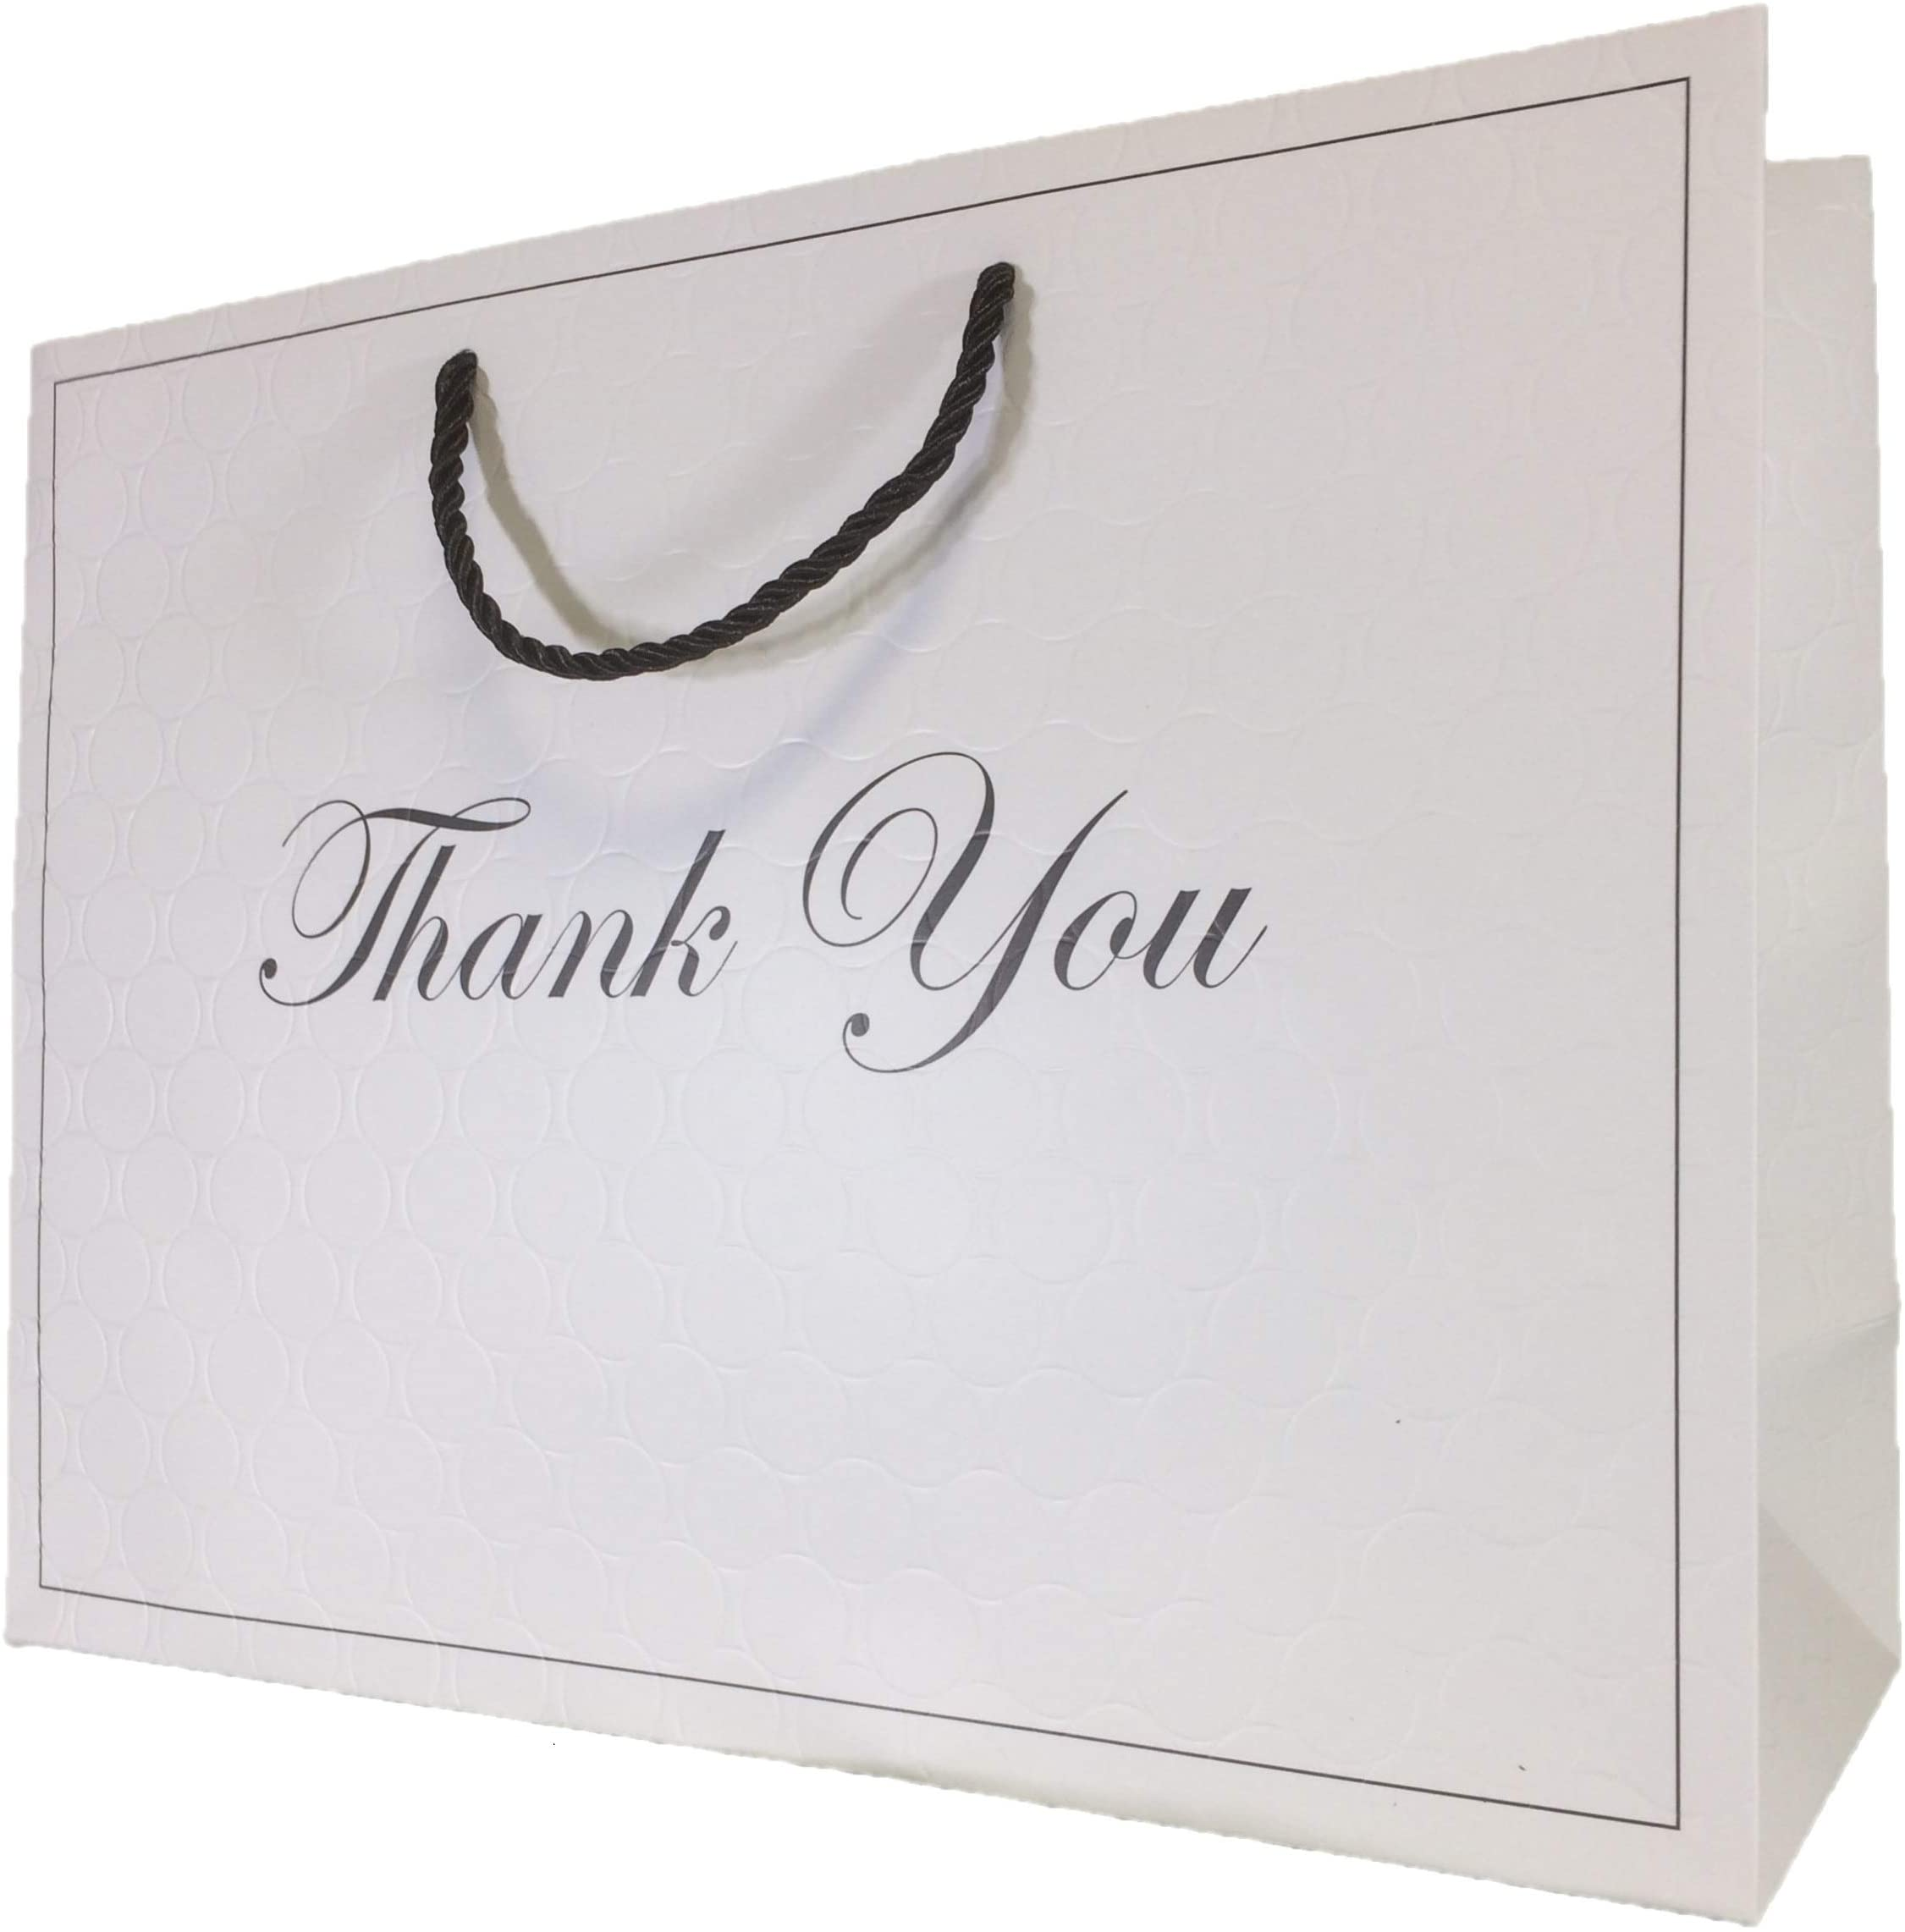 W x H x D Events and Special Occasions 400x300x130mm 5 Black Matt Laminated Boutique Gift Bags With Matching Rope Handles for Weddings